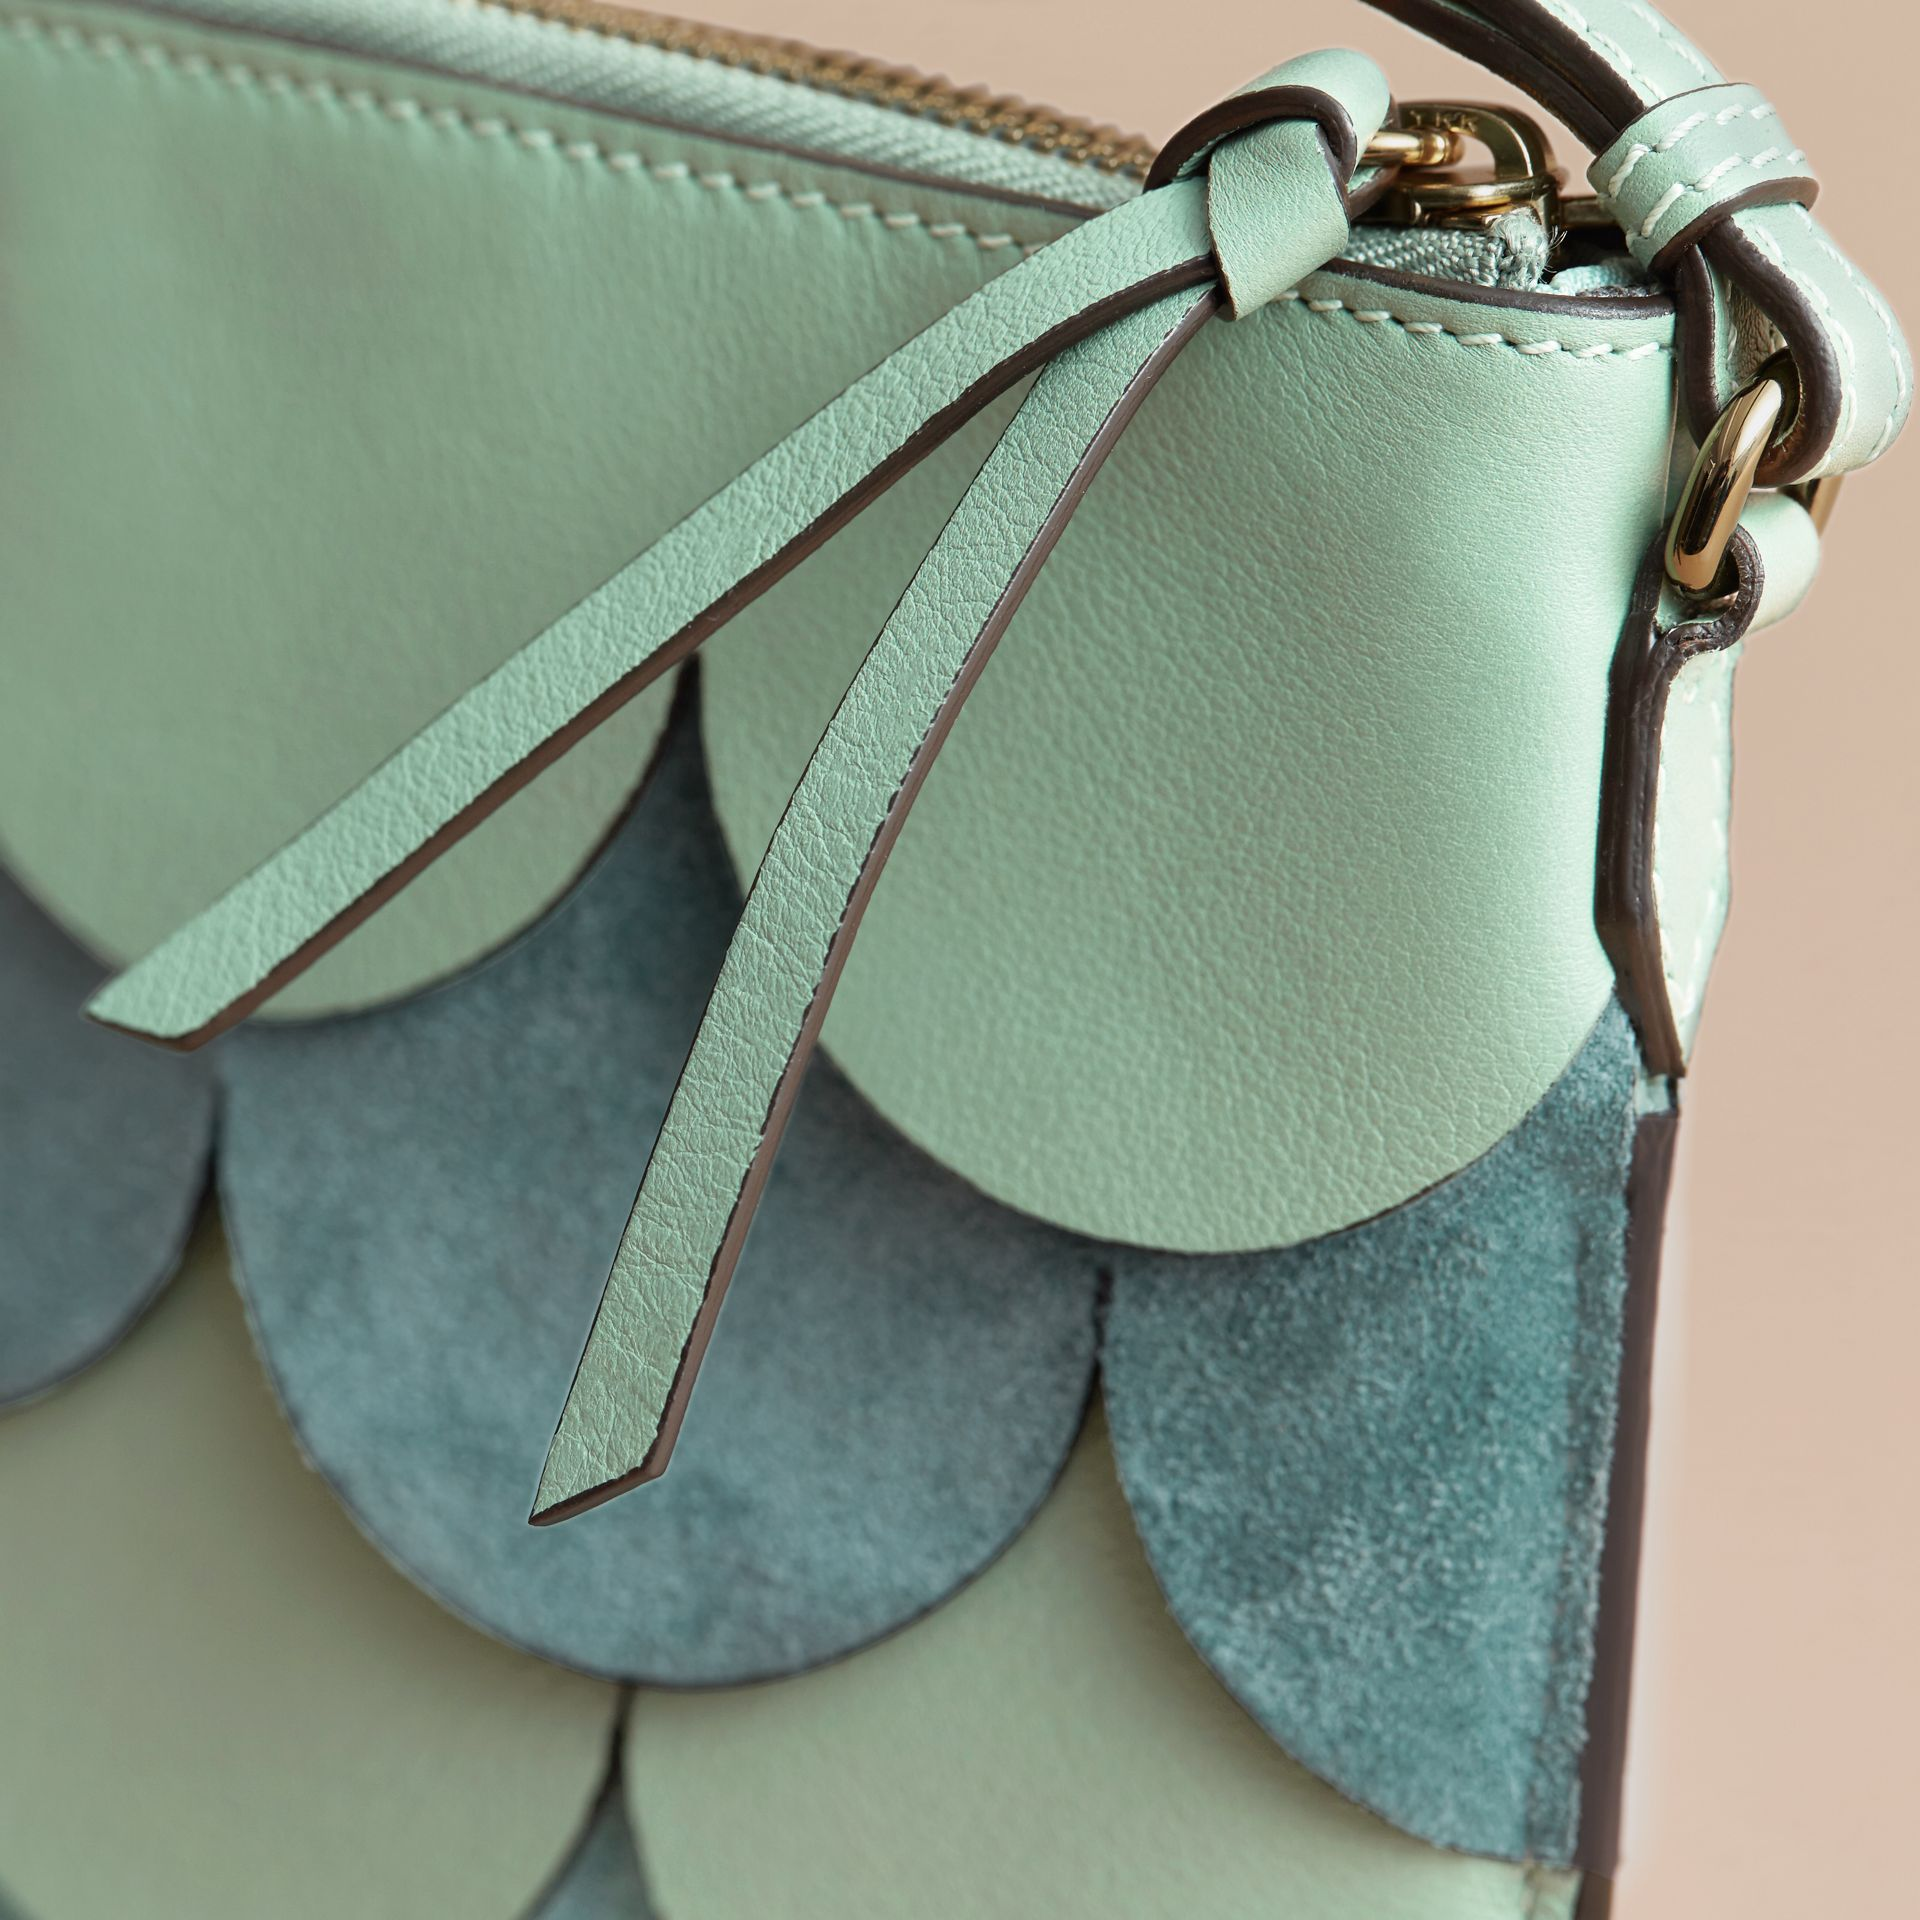 Two-tone Scalloped Leather and Suede Clutch Bag in Celadon Green - Women | Burberry Australia - gallery image 2